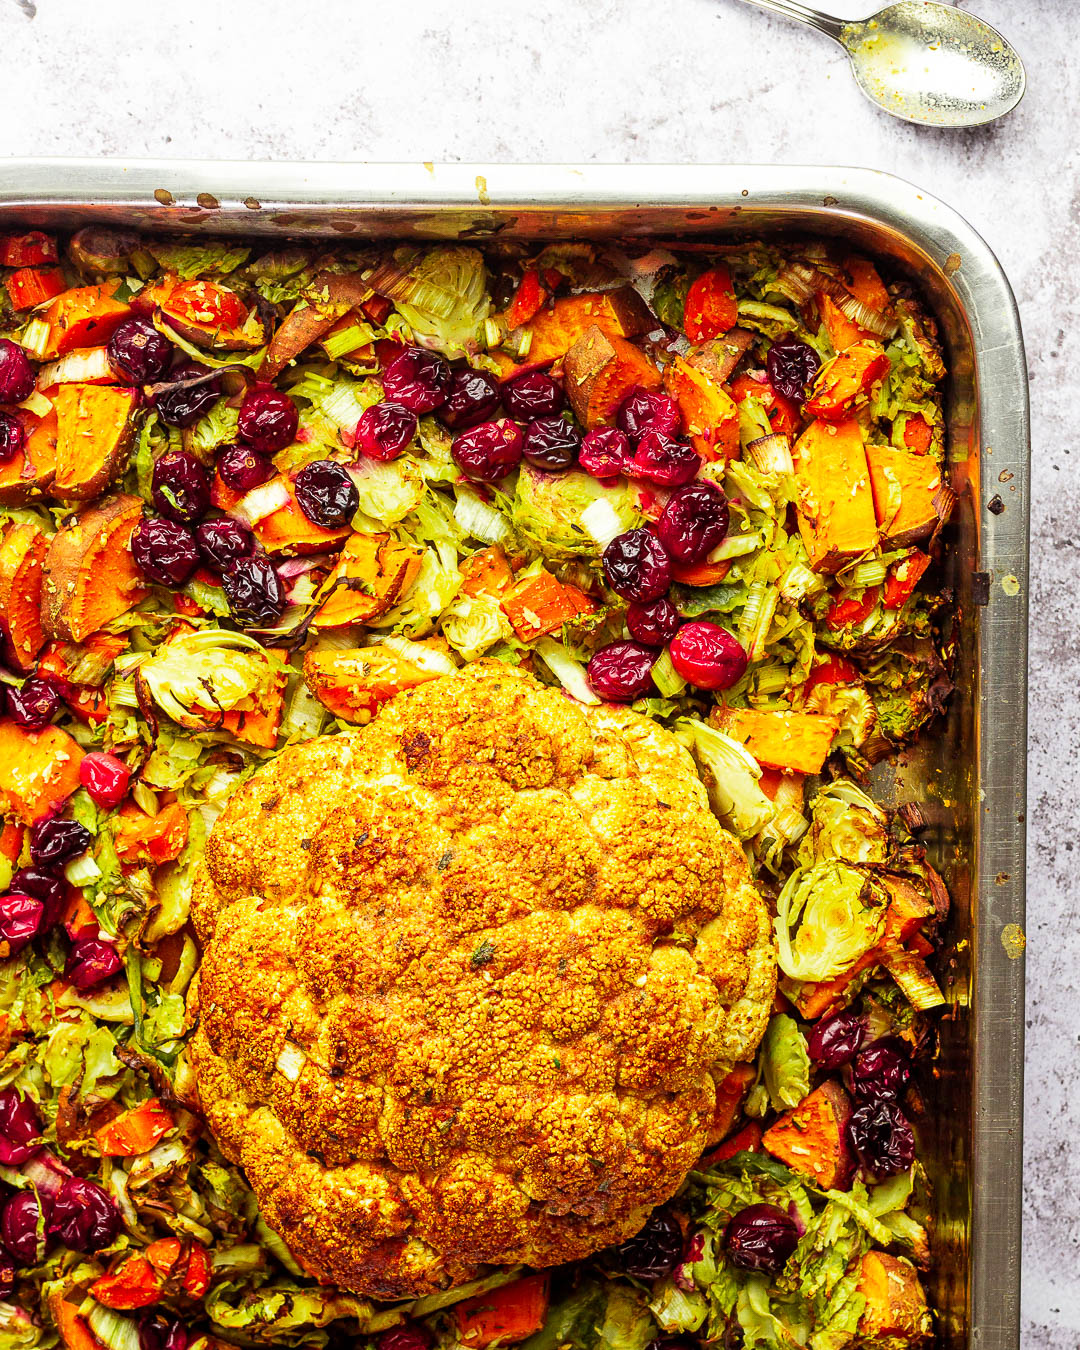 Vegan and Oil-free Low Carb Veggie Stuffing for your next holiday menu on Thanksgiving or Christmas perfect as a side dish.